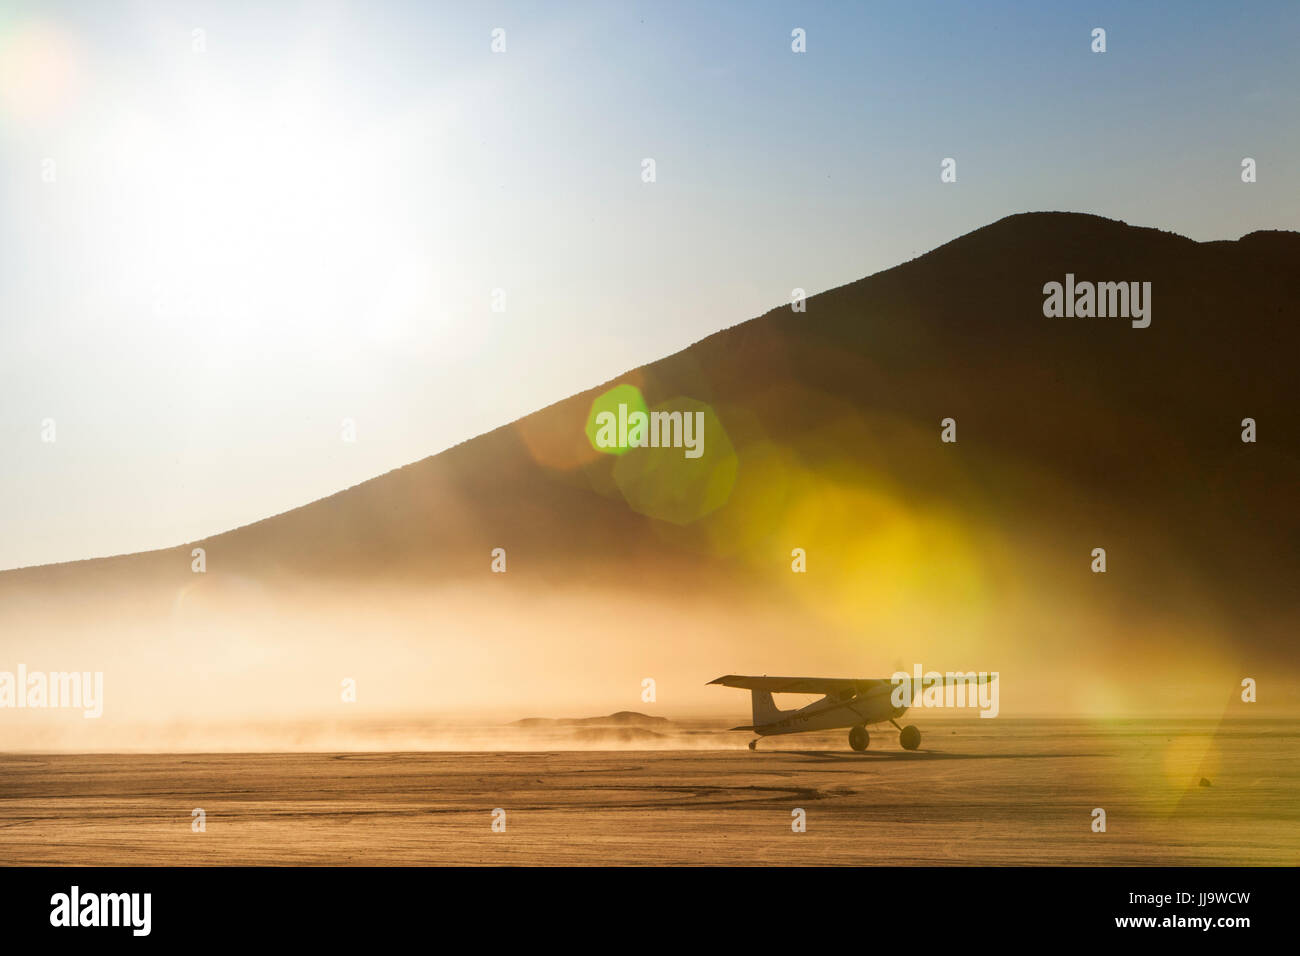 Backcountry airplane taxiing on a dry lakebed, Nevada - Stock Image